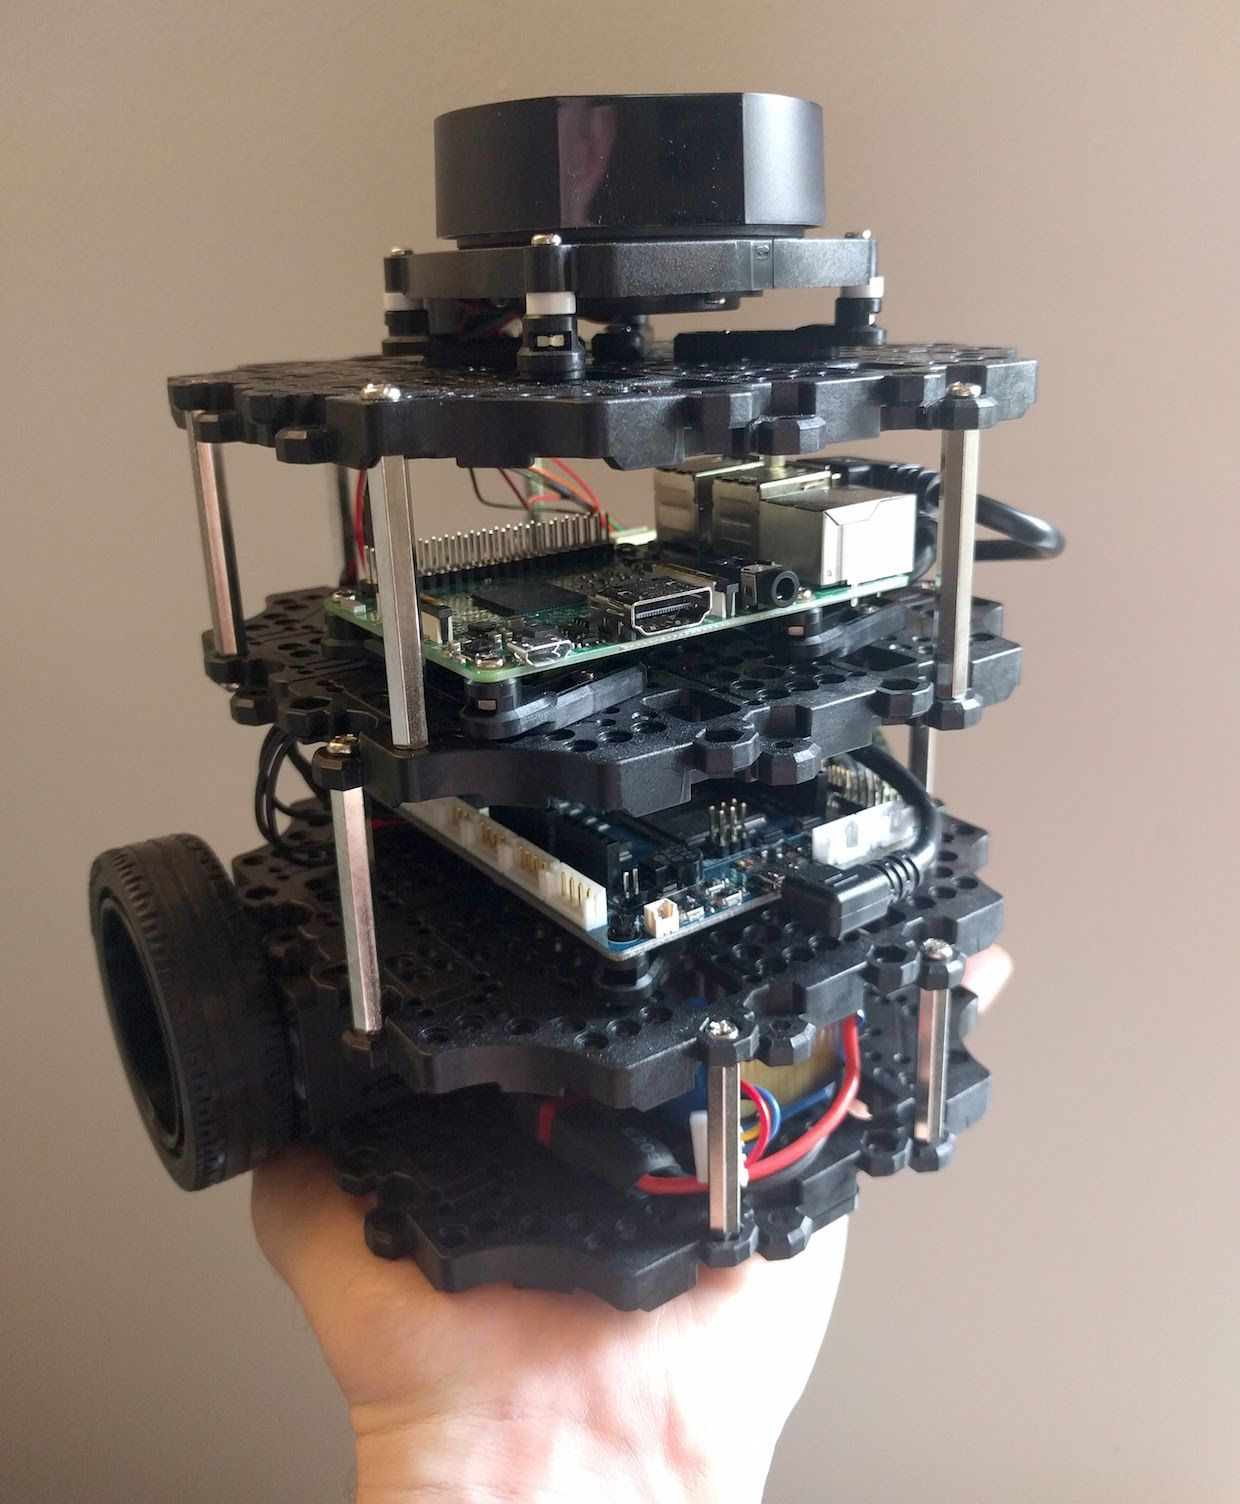 You can hold the TurtleBot 3 Burger on your palm